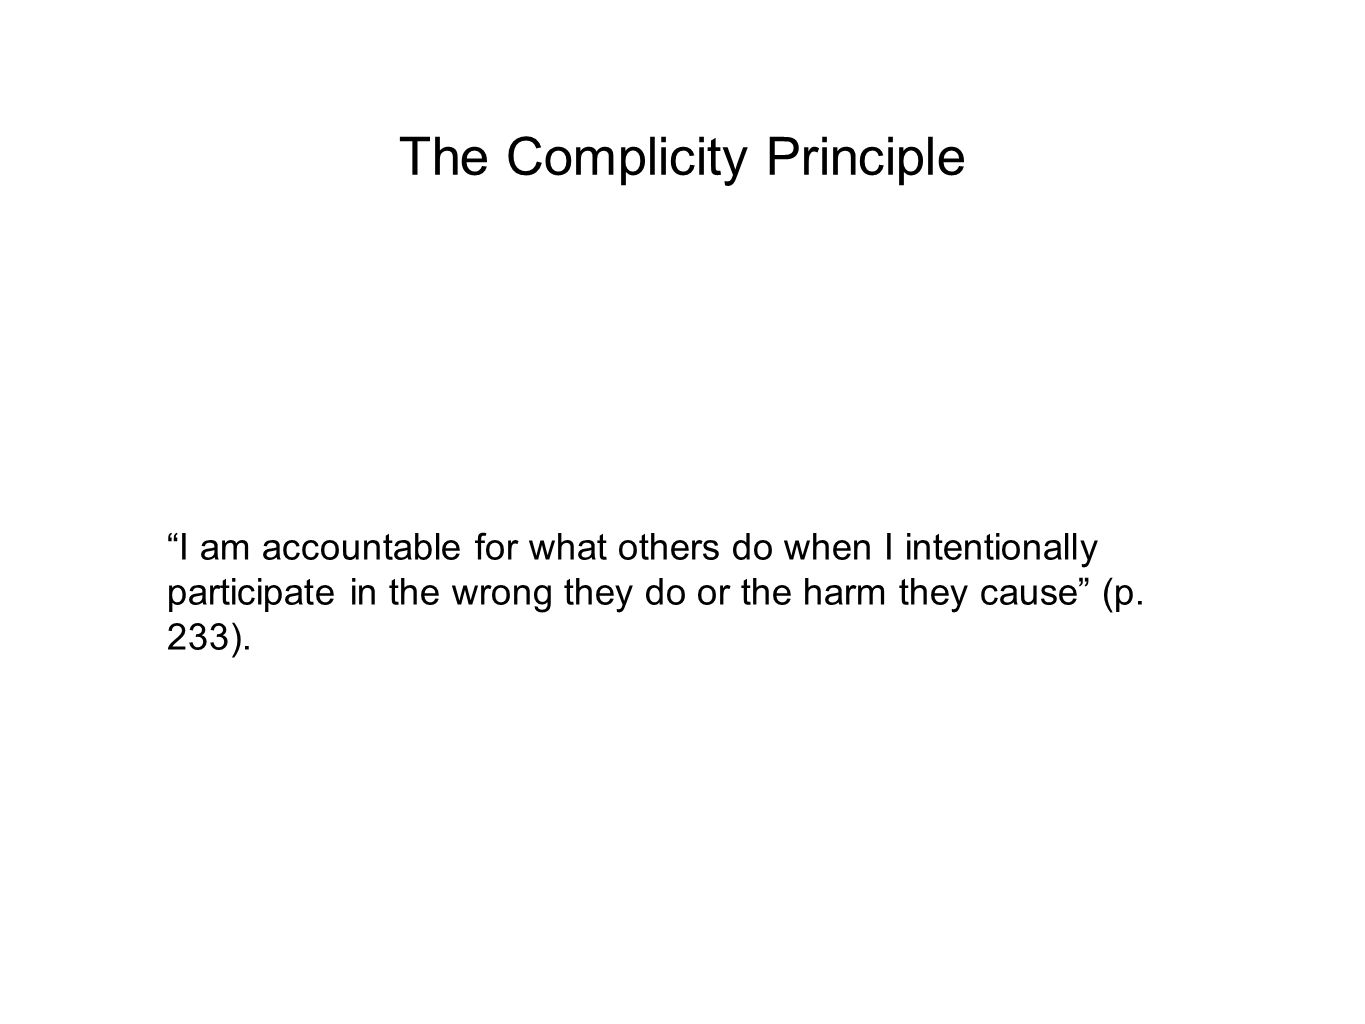 The Complicity Principle I am accountable for what others do when I intentionally participate in the wrong they do or the harm they cause (p.